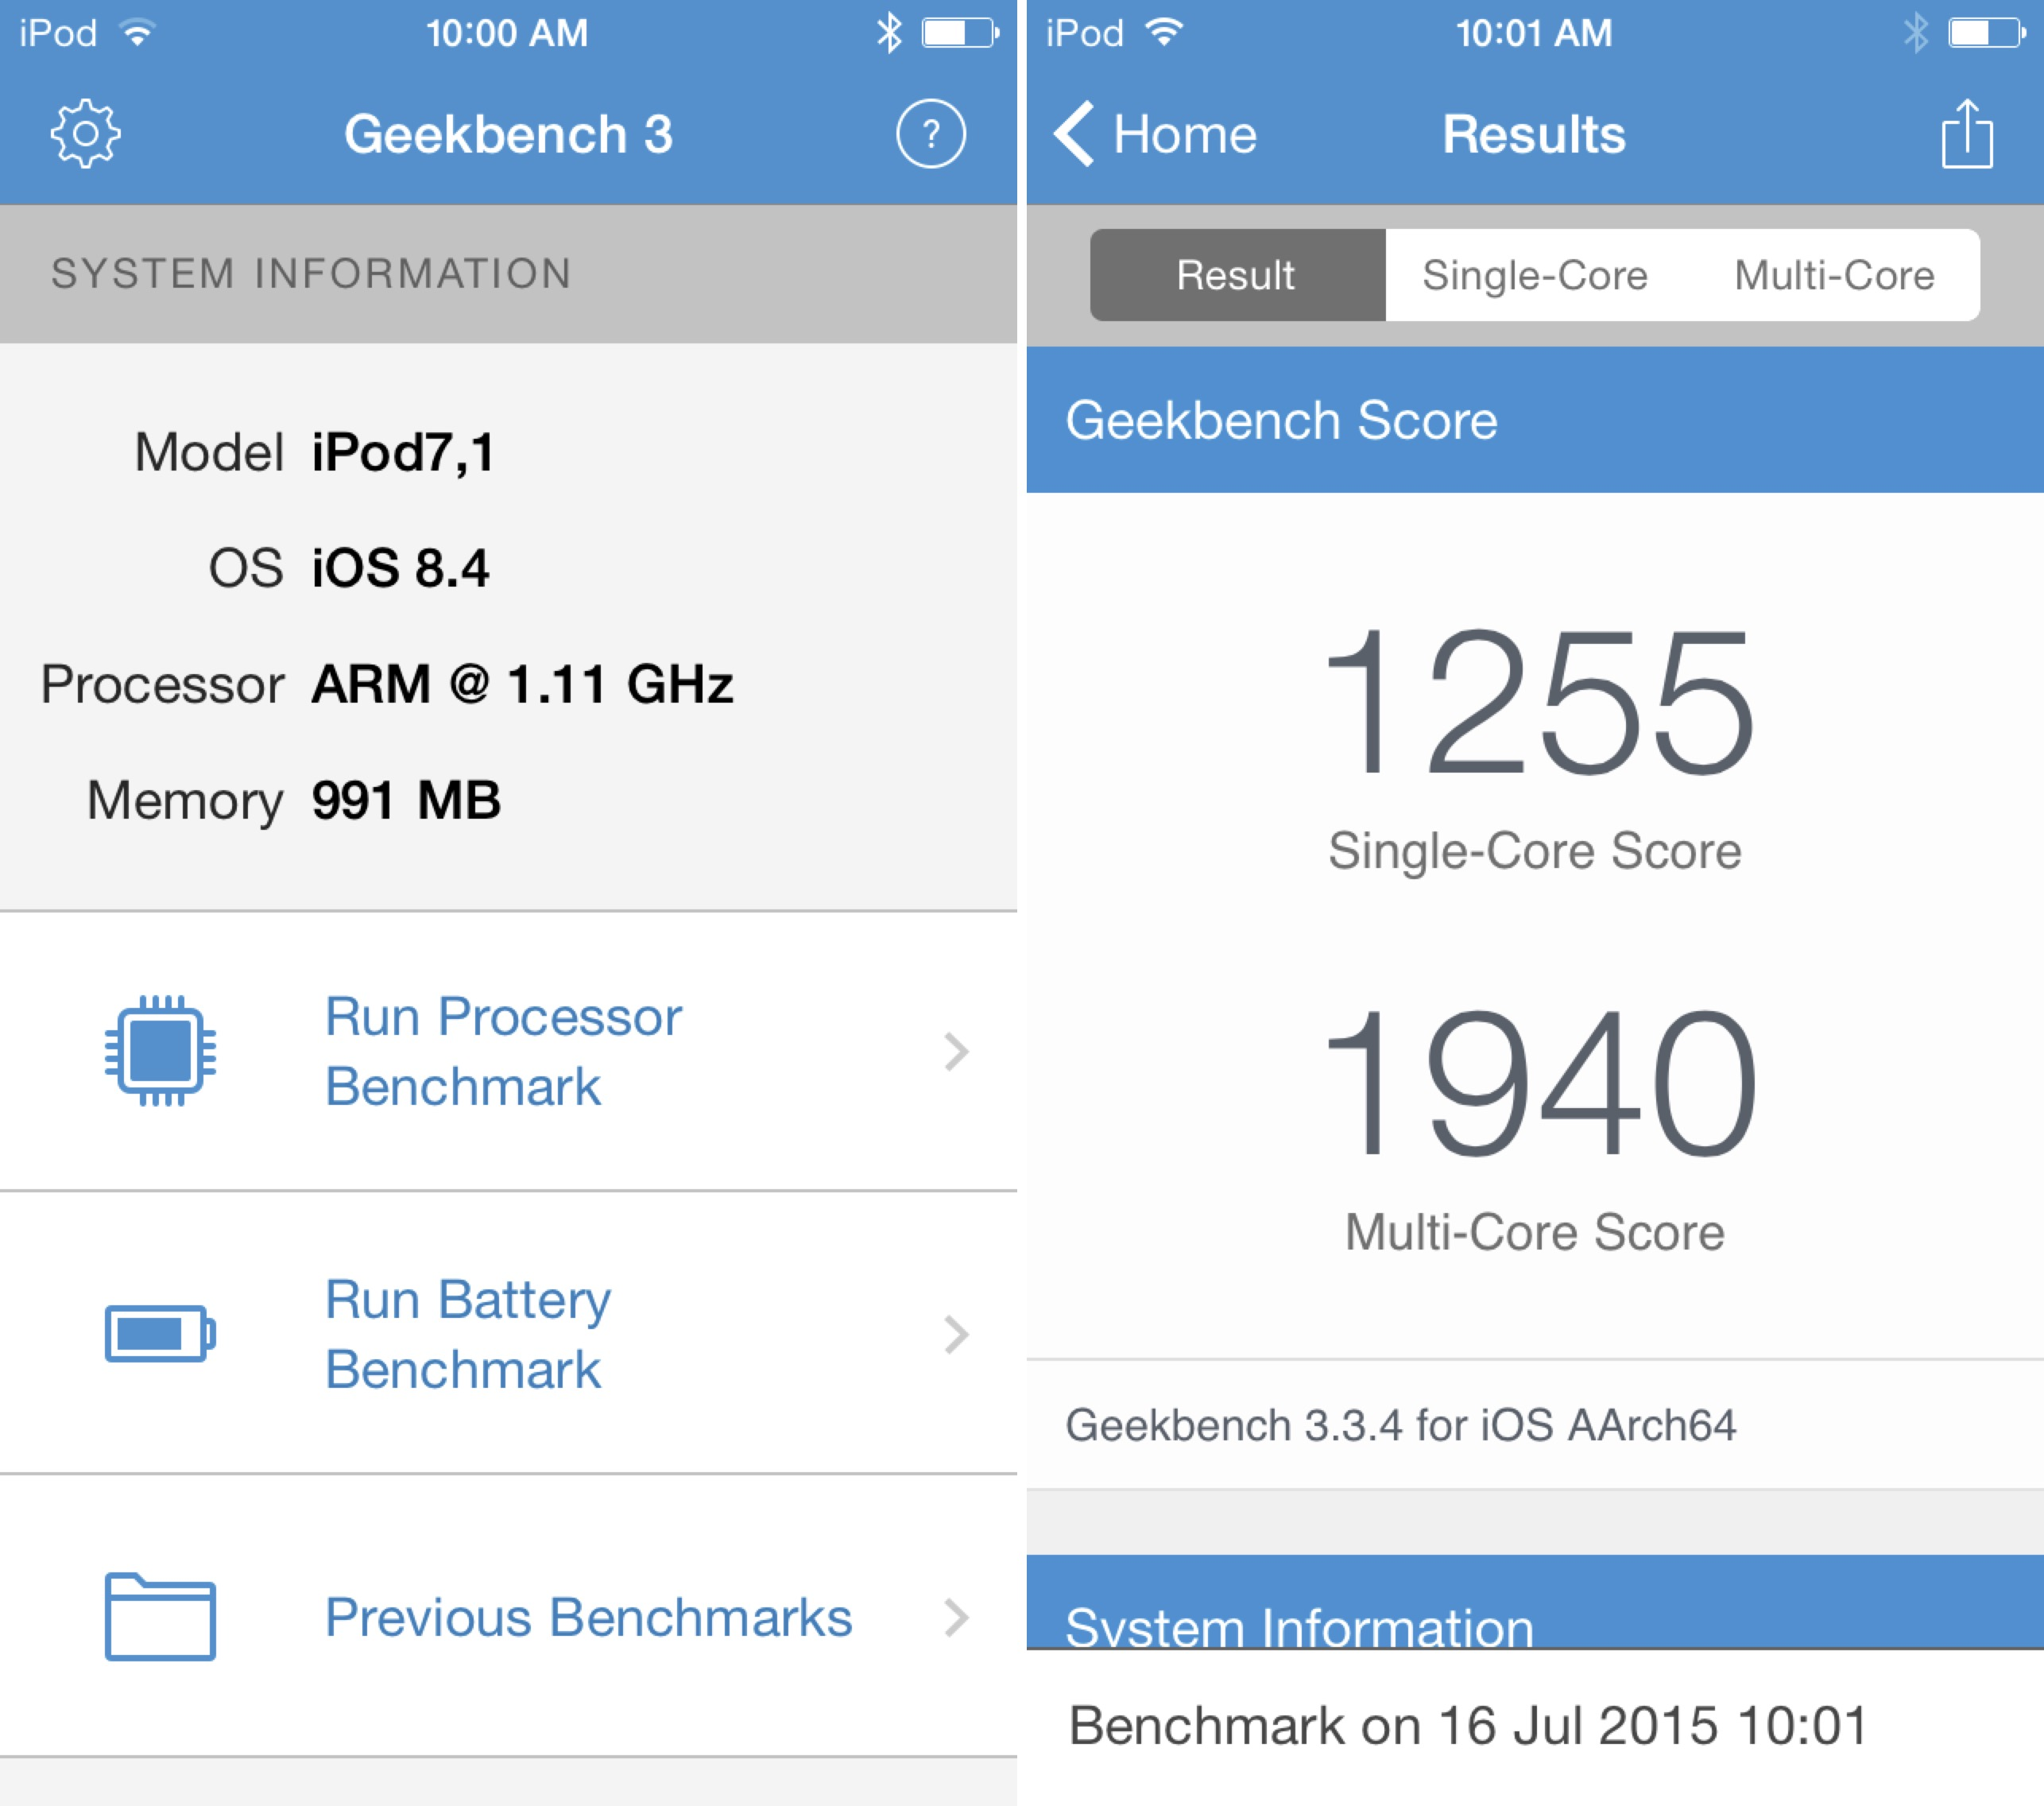 iPod touch 6g benchmark